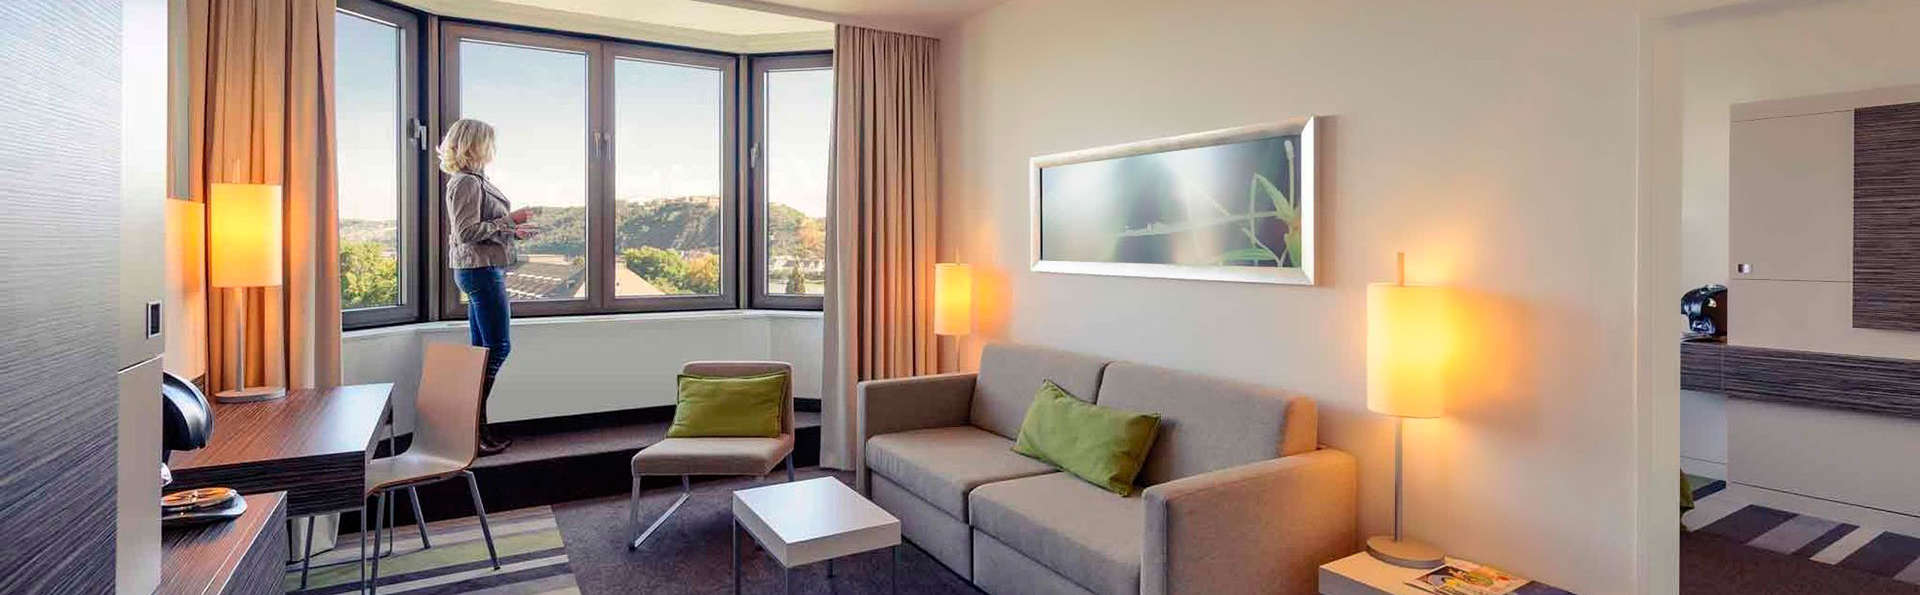 Mercure Hotel Koblenz - EDIT_room1.jpg